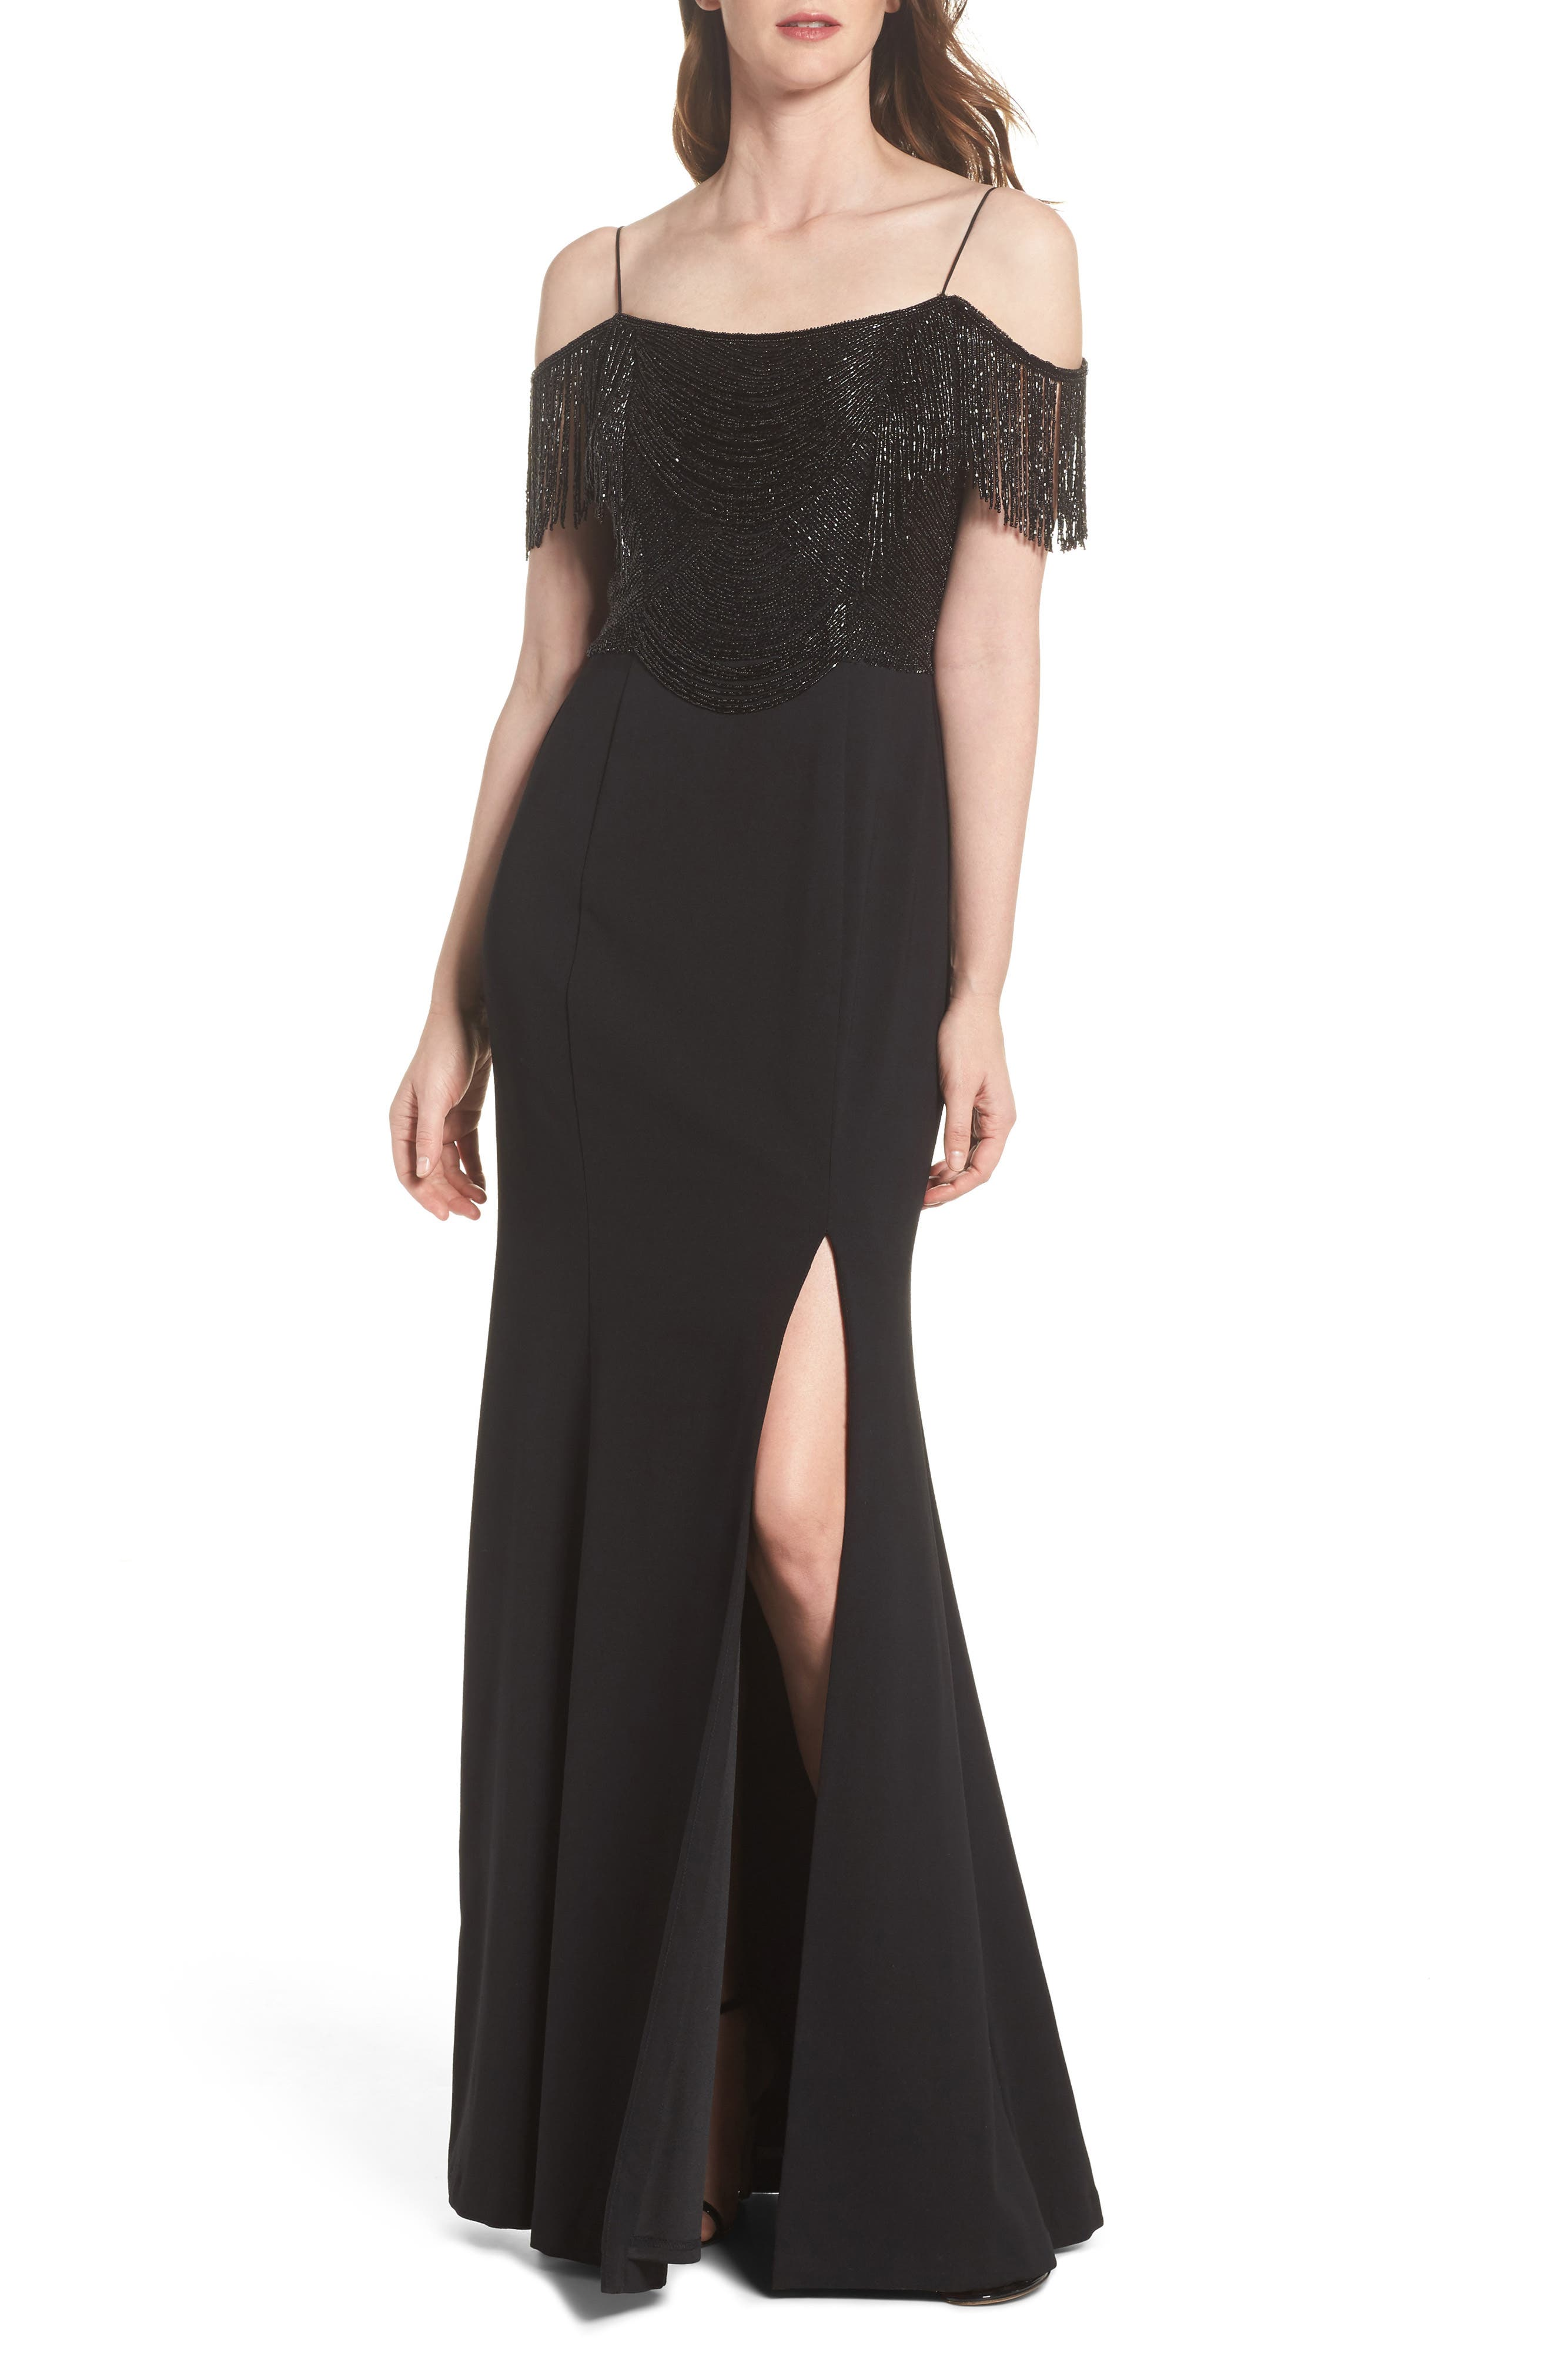 Alternate Image 1 Selected - Adrianna Papell Fringe Cold Shoulder Crepe Gown